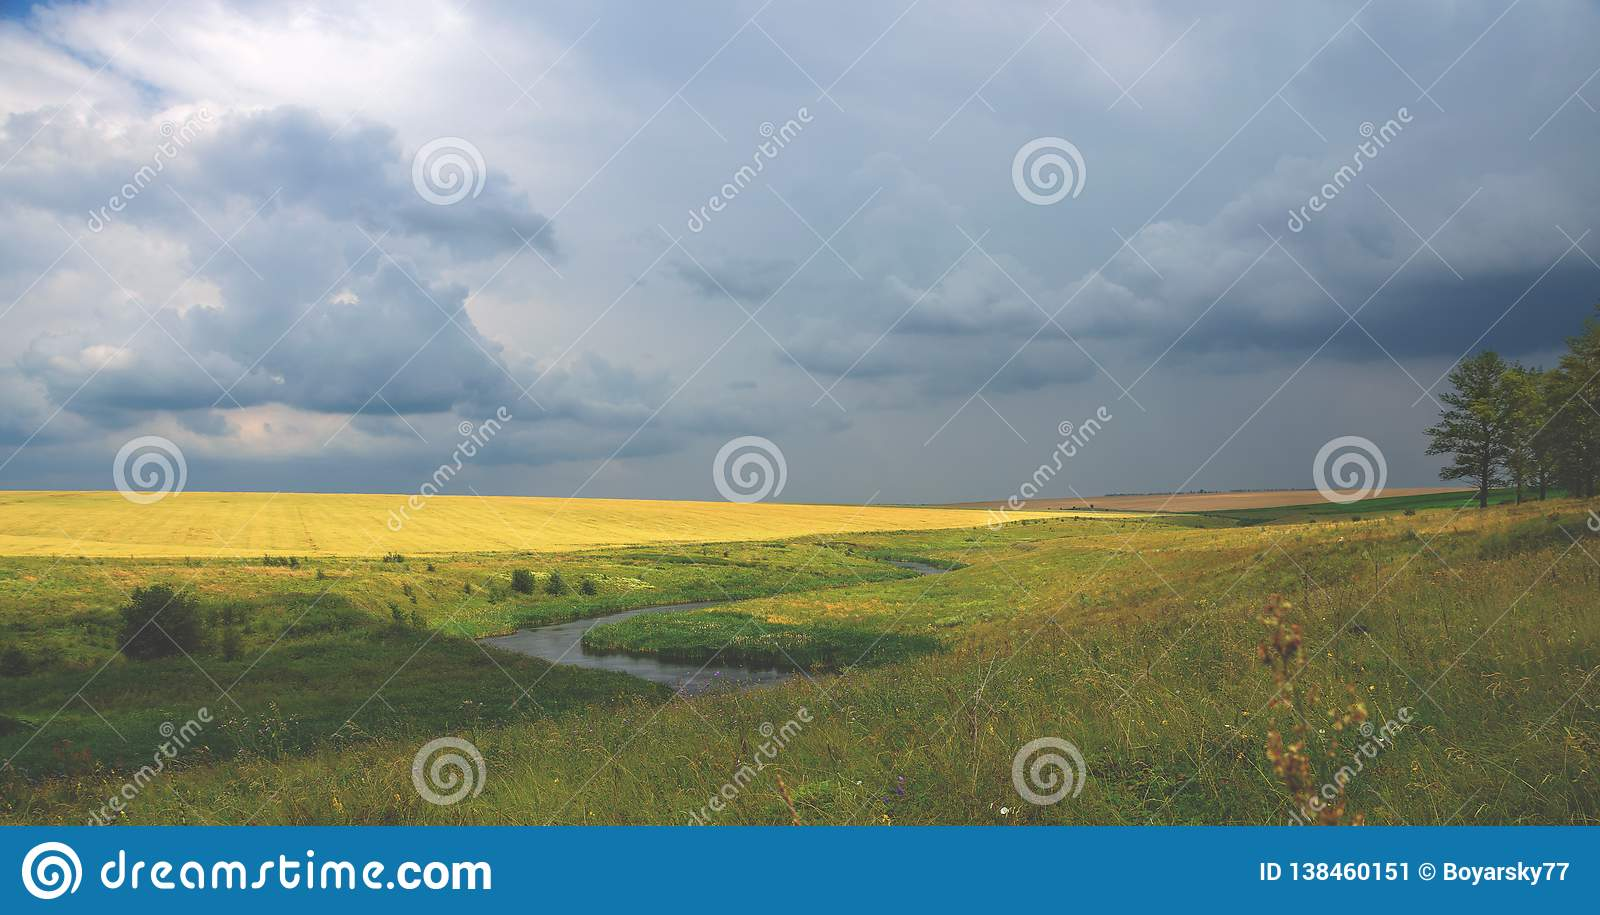 Cloudy summer landscape with river and wheat field